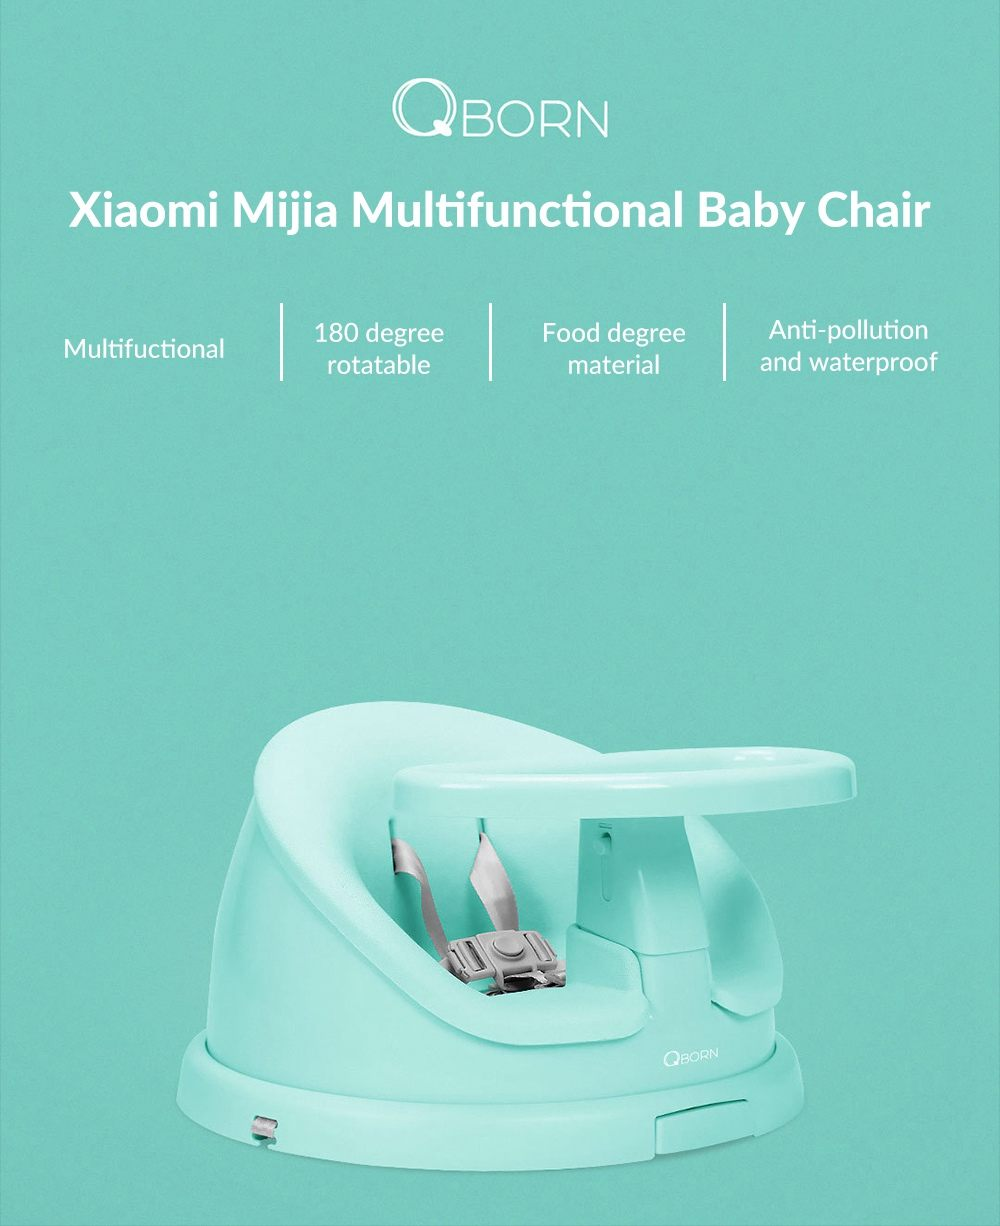 Xiaomi Mijia Multifunctional Baby Chair